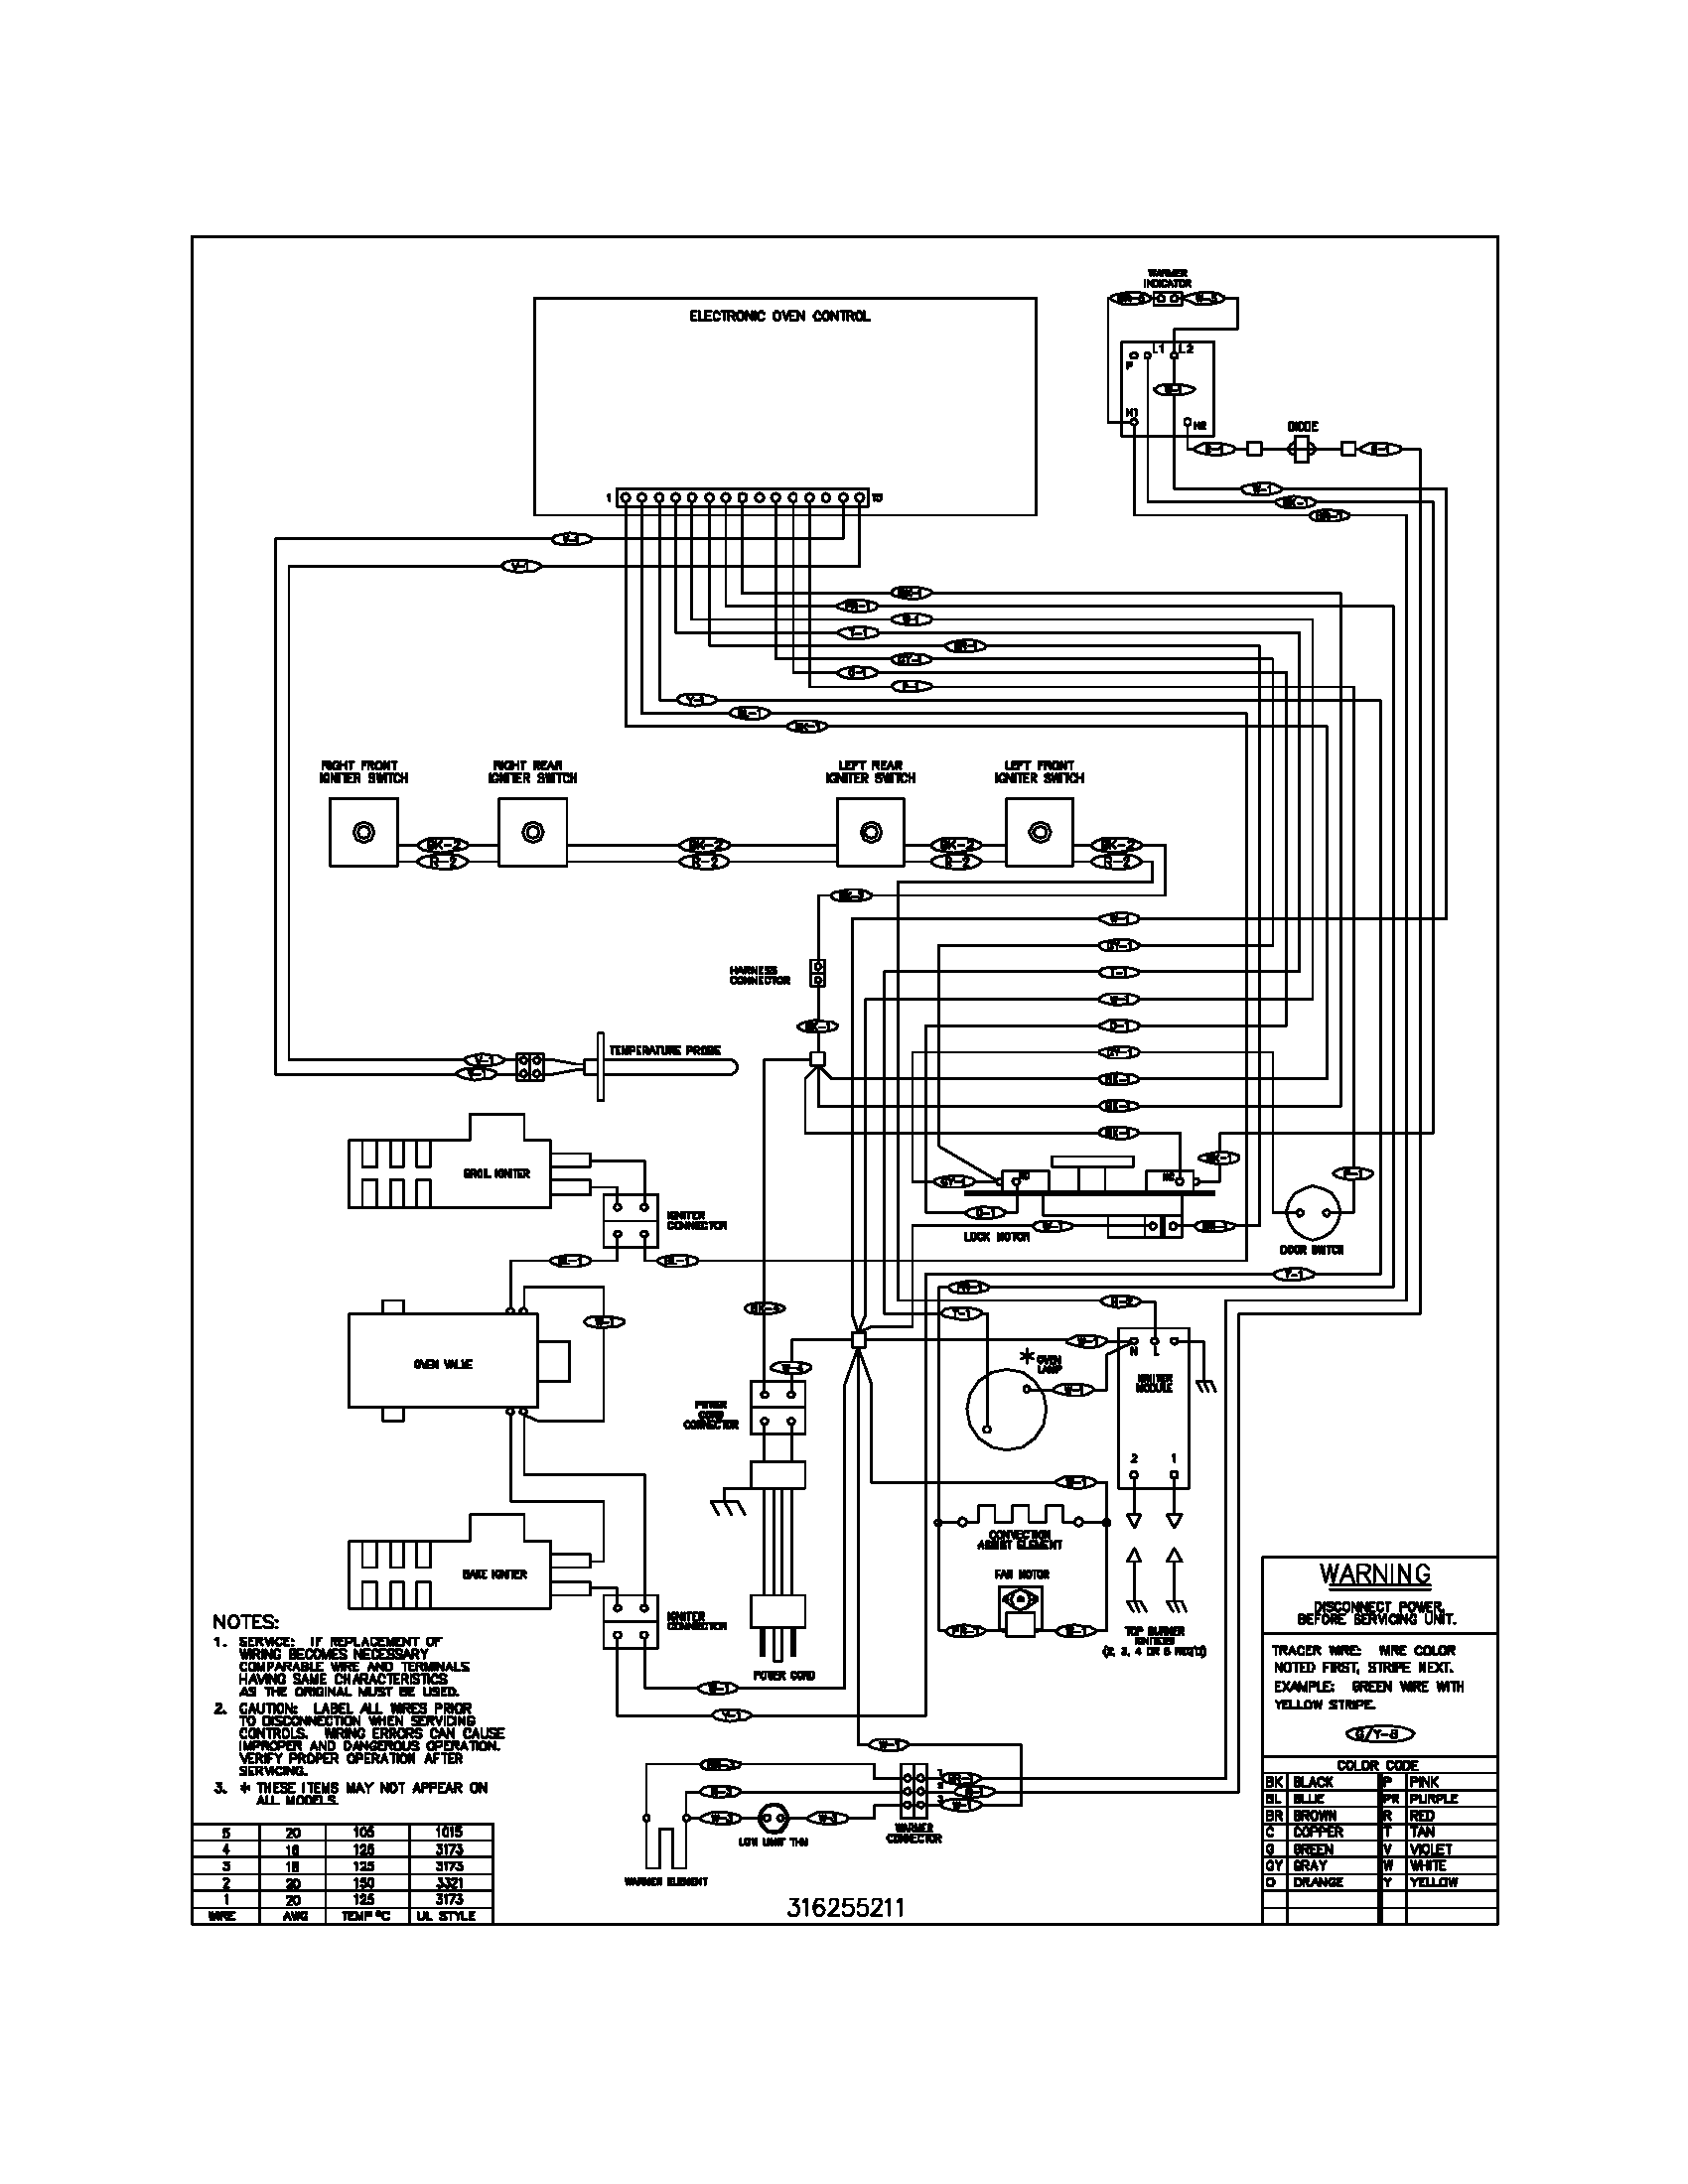 frigidaire plgf389ccc gas range timer stove clocks and appliance plgf389ccc gas range wiring diagram parts diagram